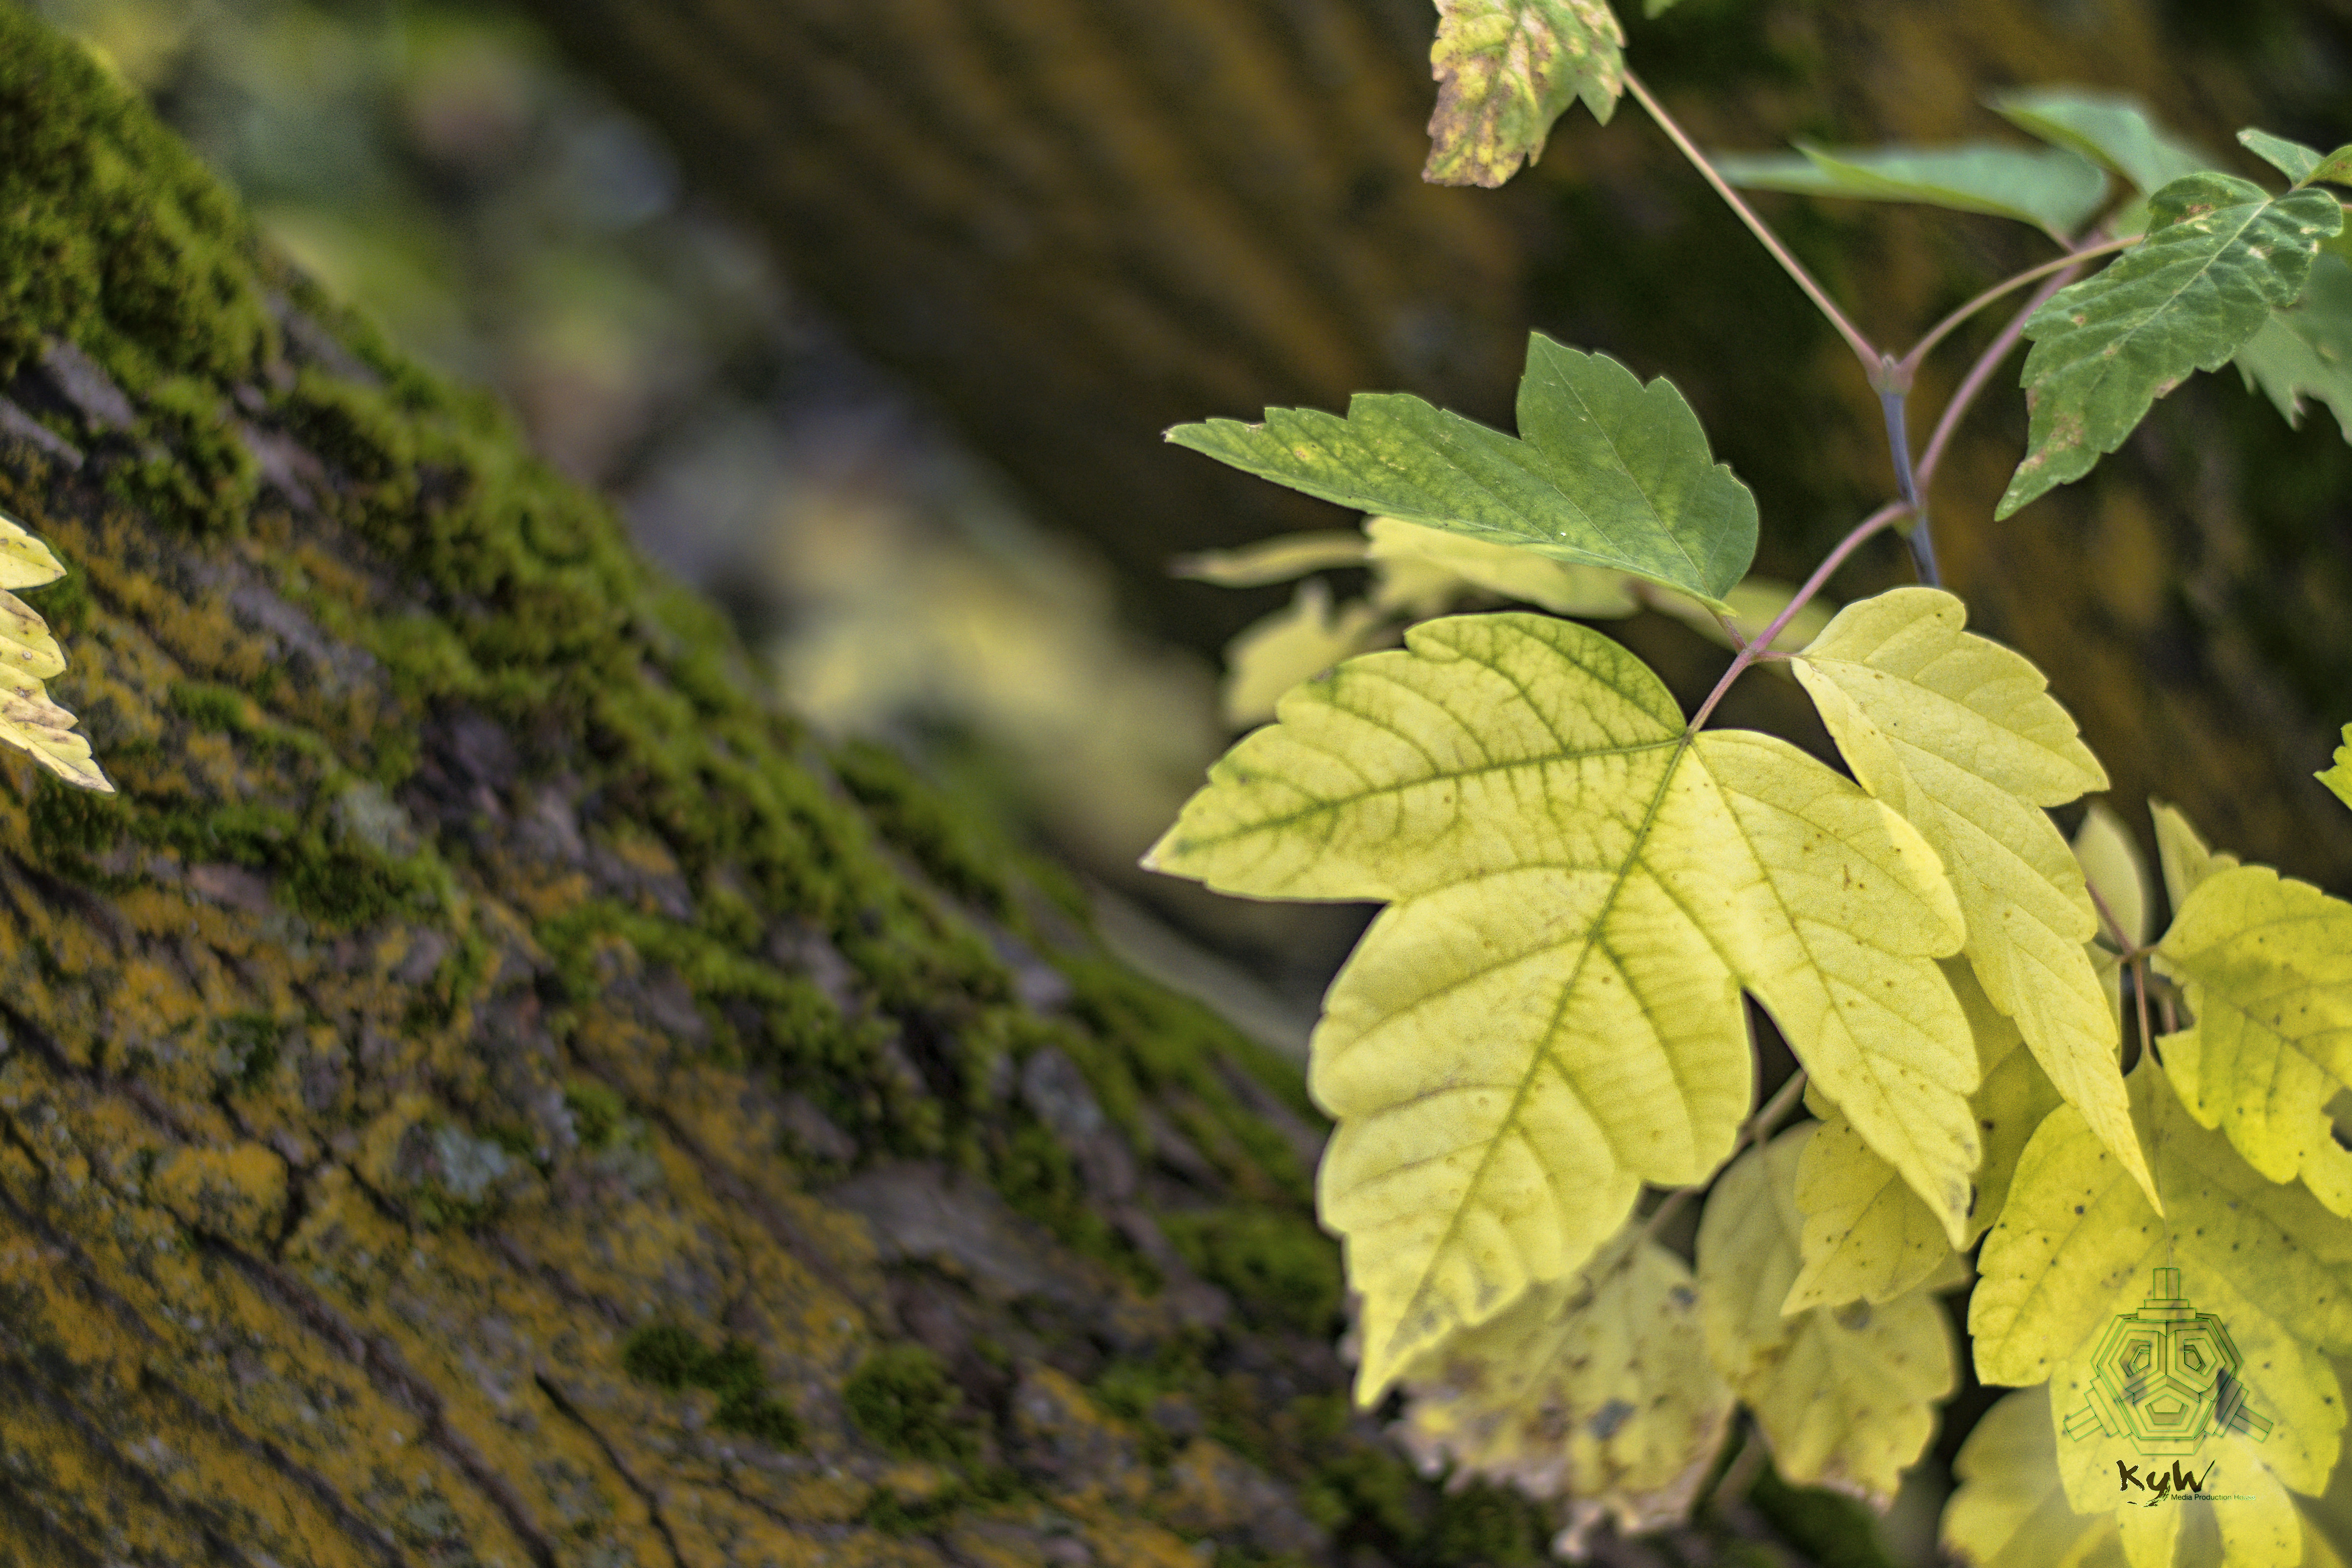 free desktop background image for fall season early autumn colors and mossy bark